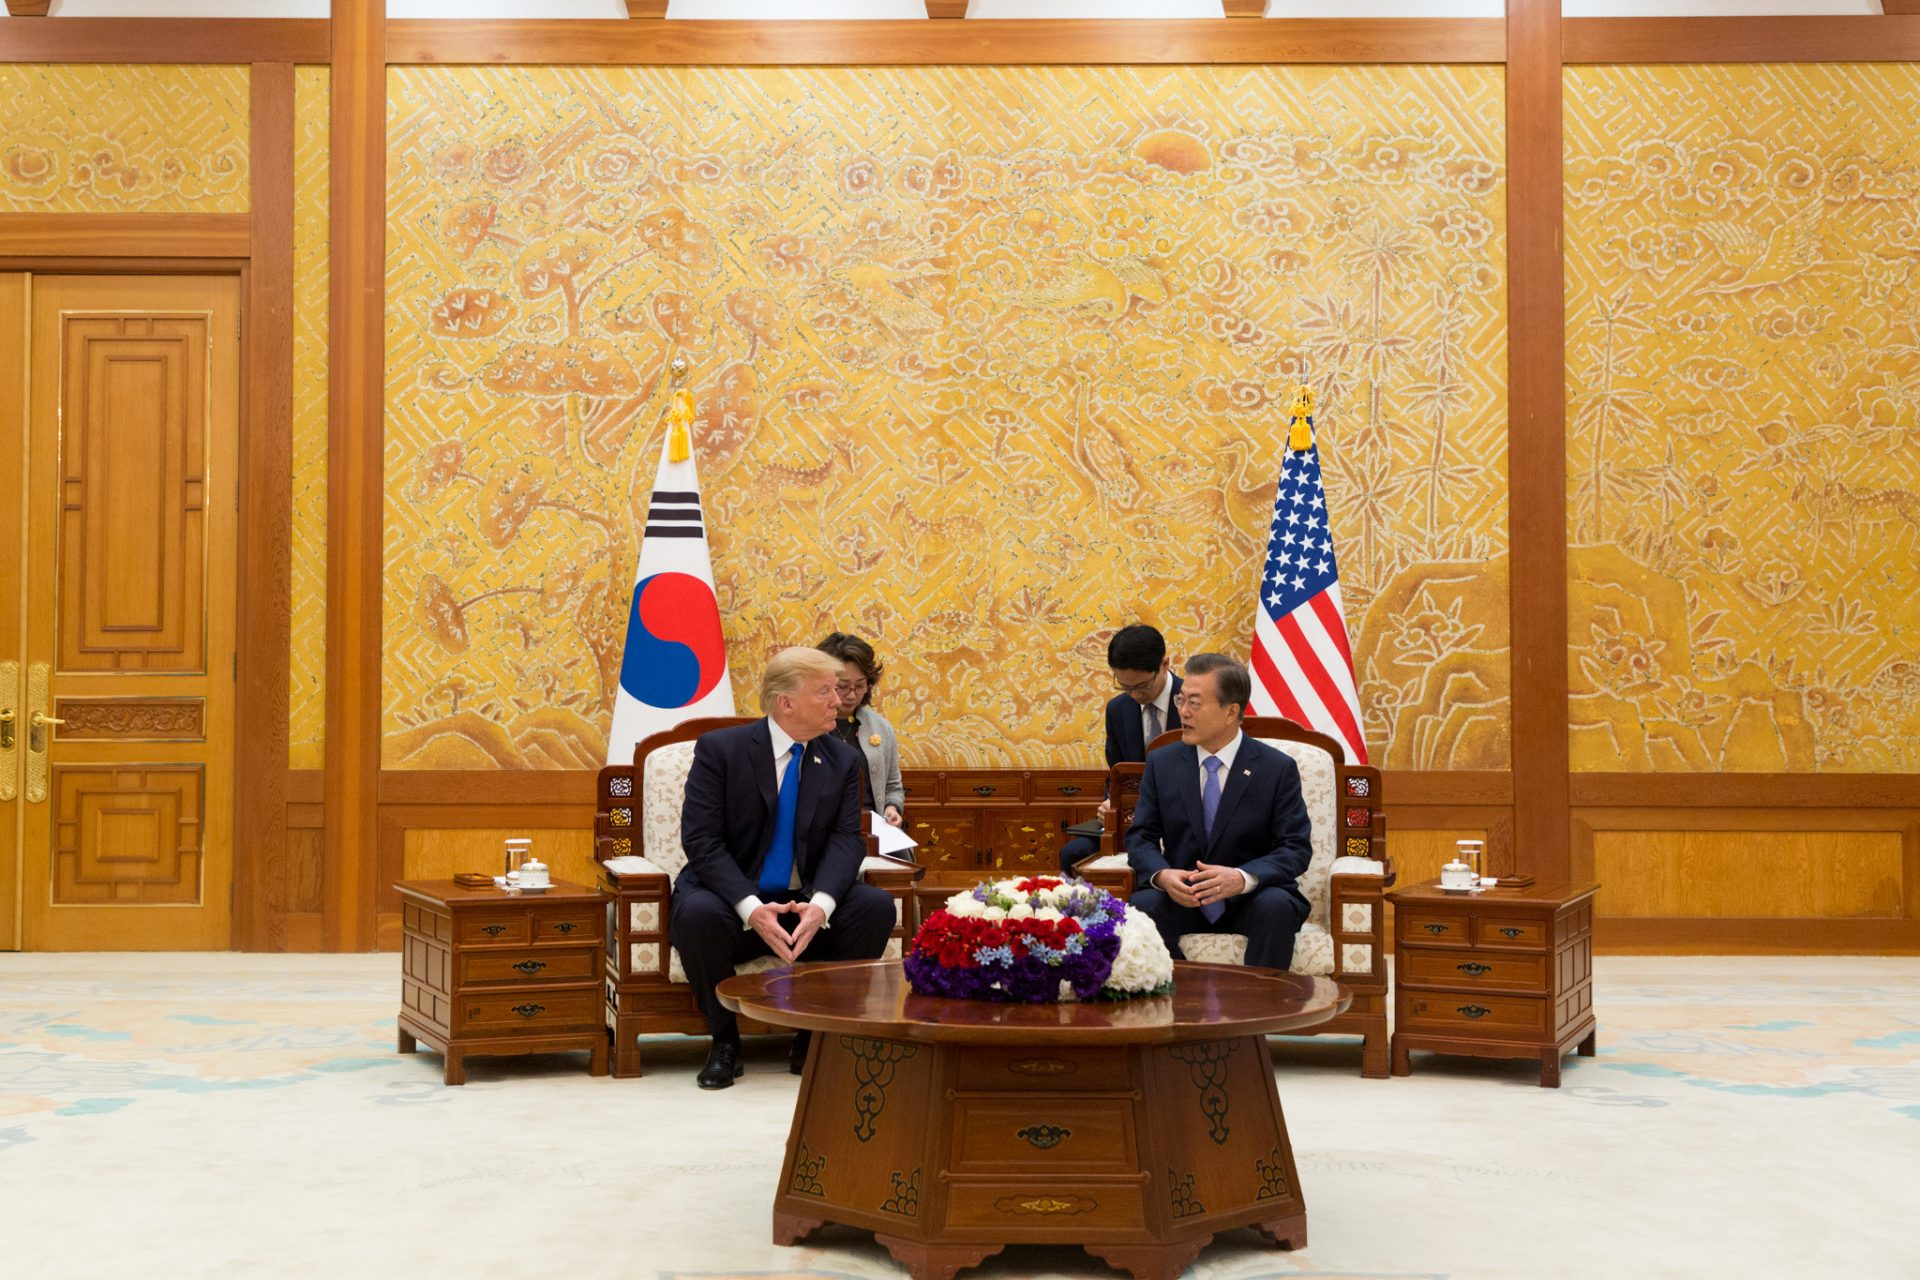 South Korea planned their state dinner so it would tailor to Trump's tastes while exhibiting Korean features and demonstrating that the ties between South Korea and the United States are strong. (Image: pixabay / CC0 1.0)